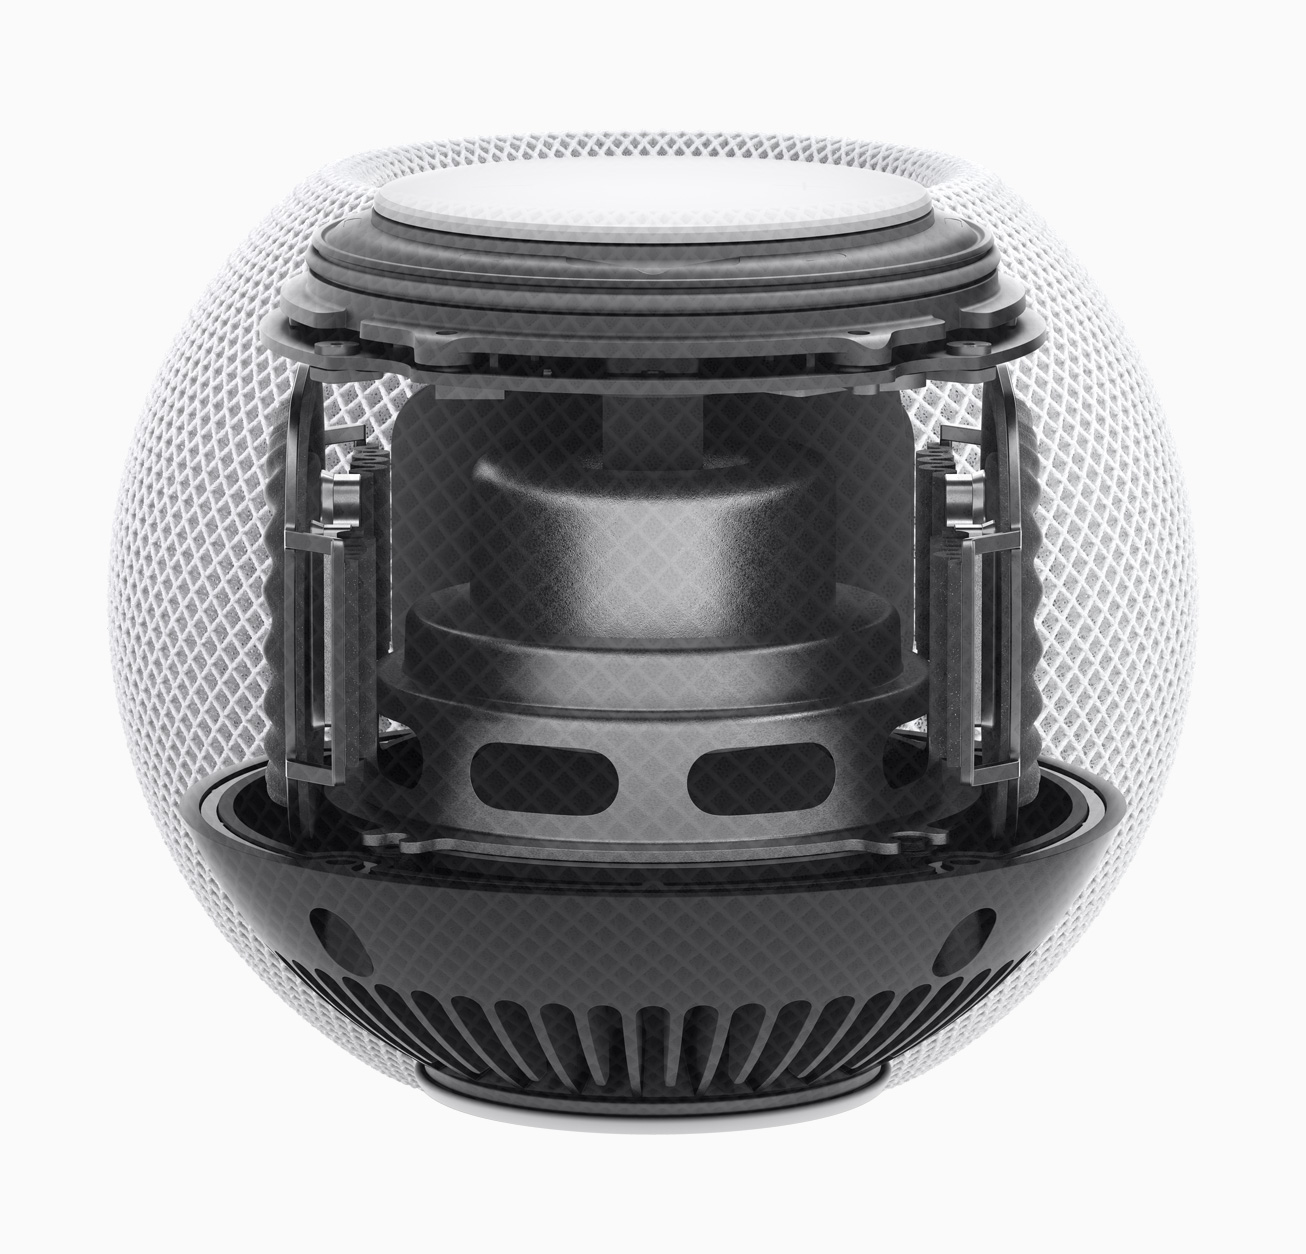 A look inside the HomePod mini. Source: Apple.